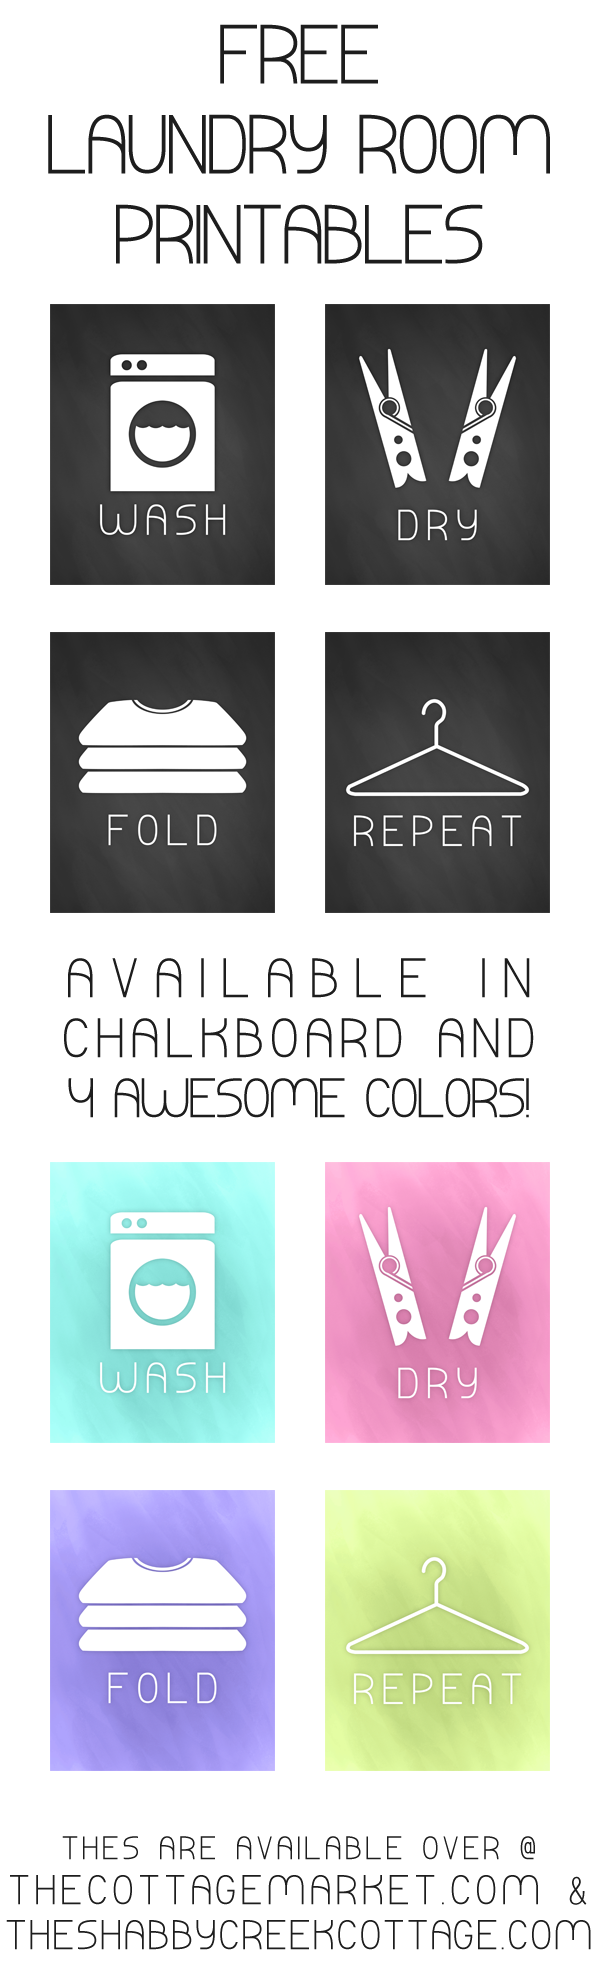 picture relating to Free Printable Laundry Room Signs called Absolutely free preset of laundry artwork prints